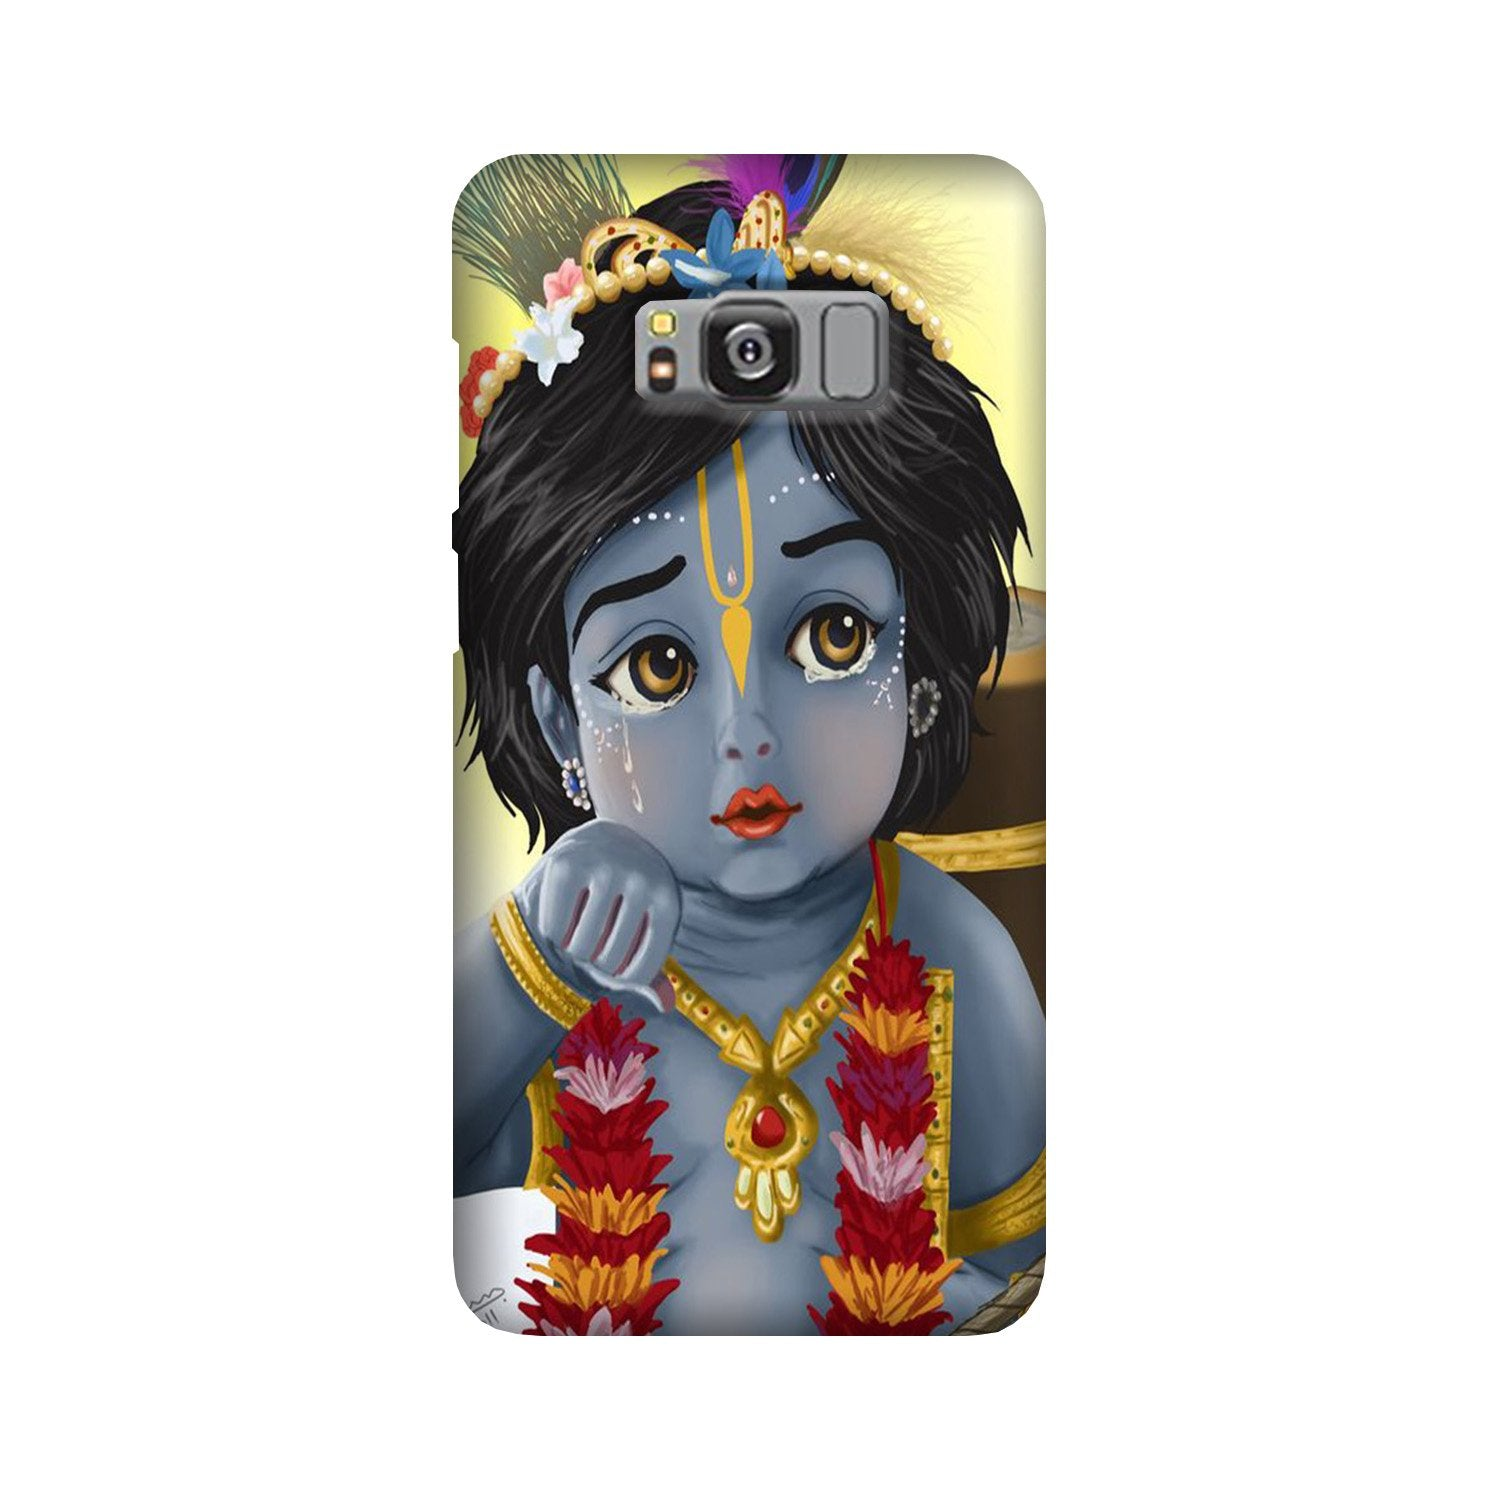 Bal Gopal Case for Galaxy S8